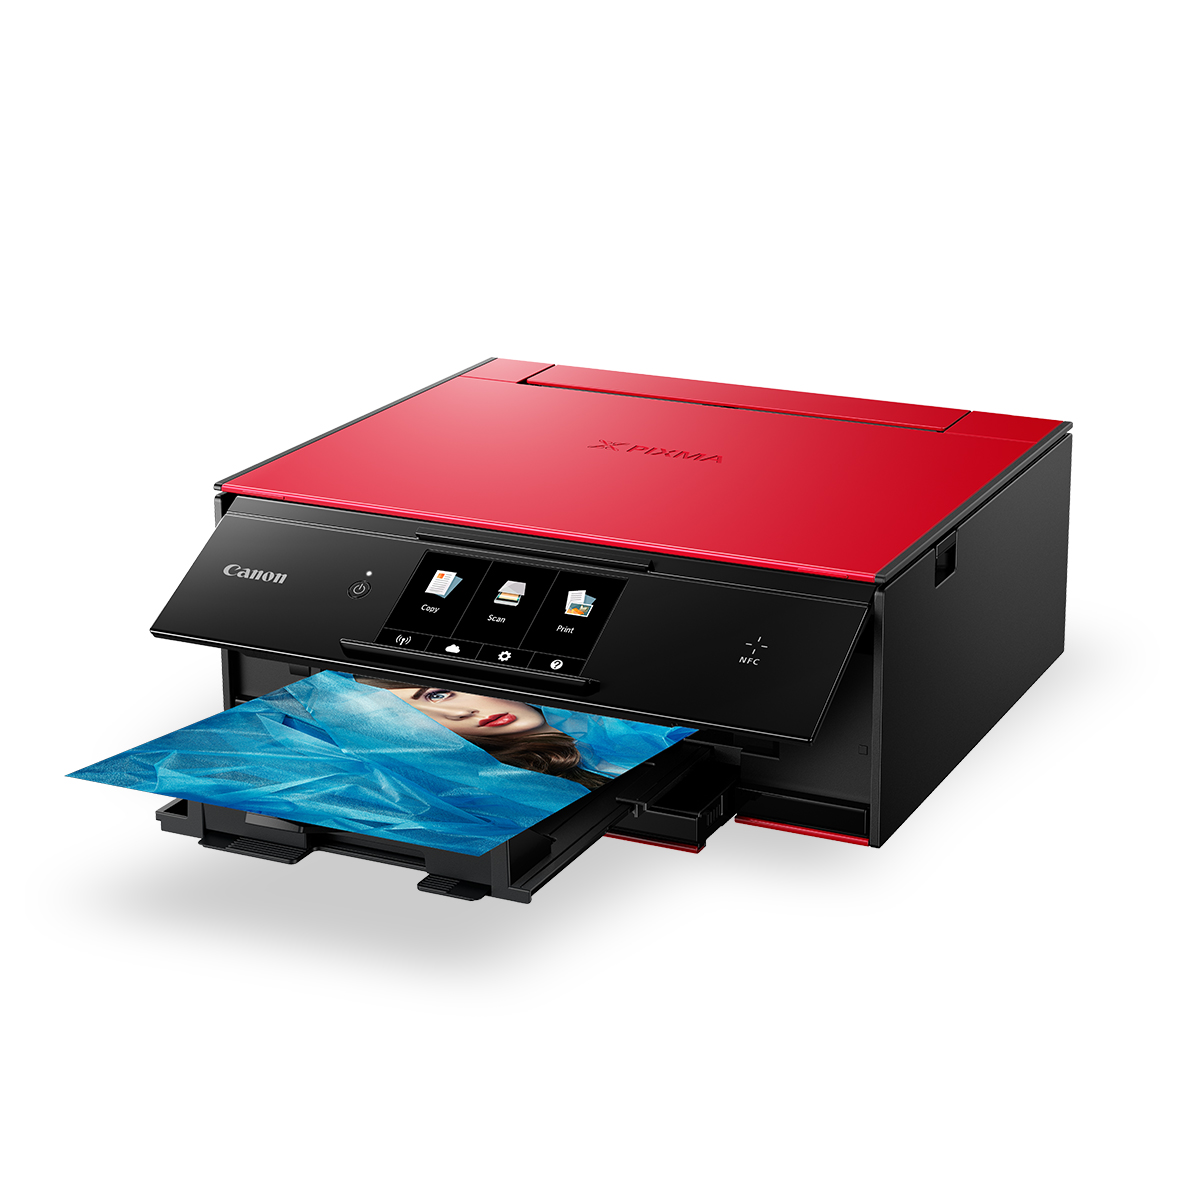 PIXMA TS9060 red front angled with shadow